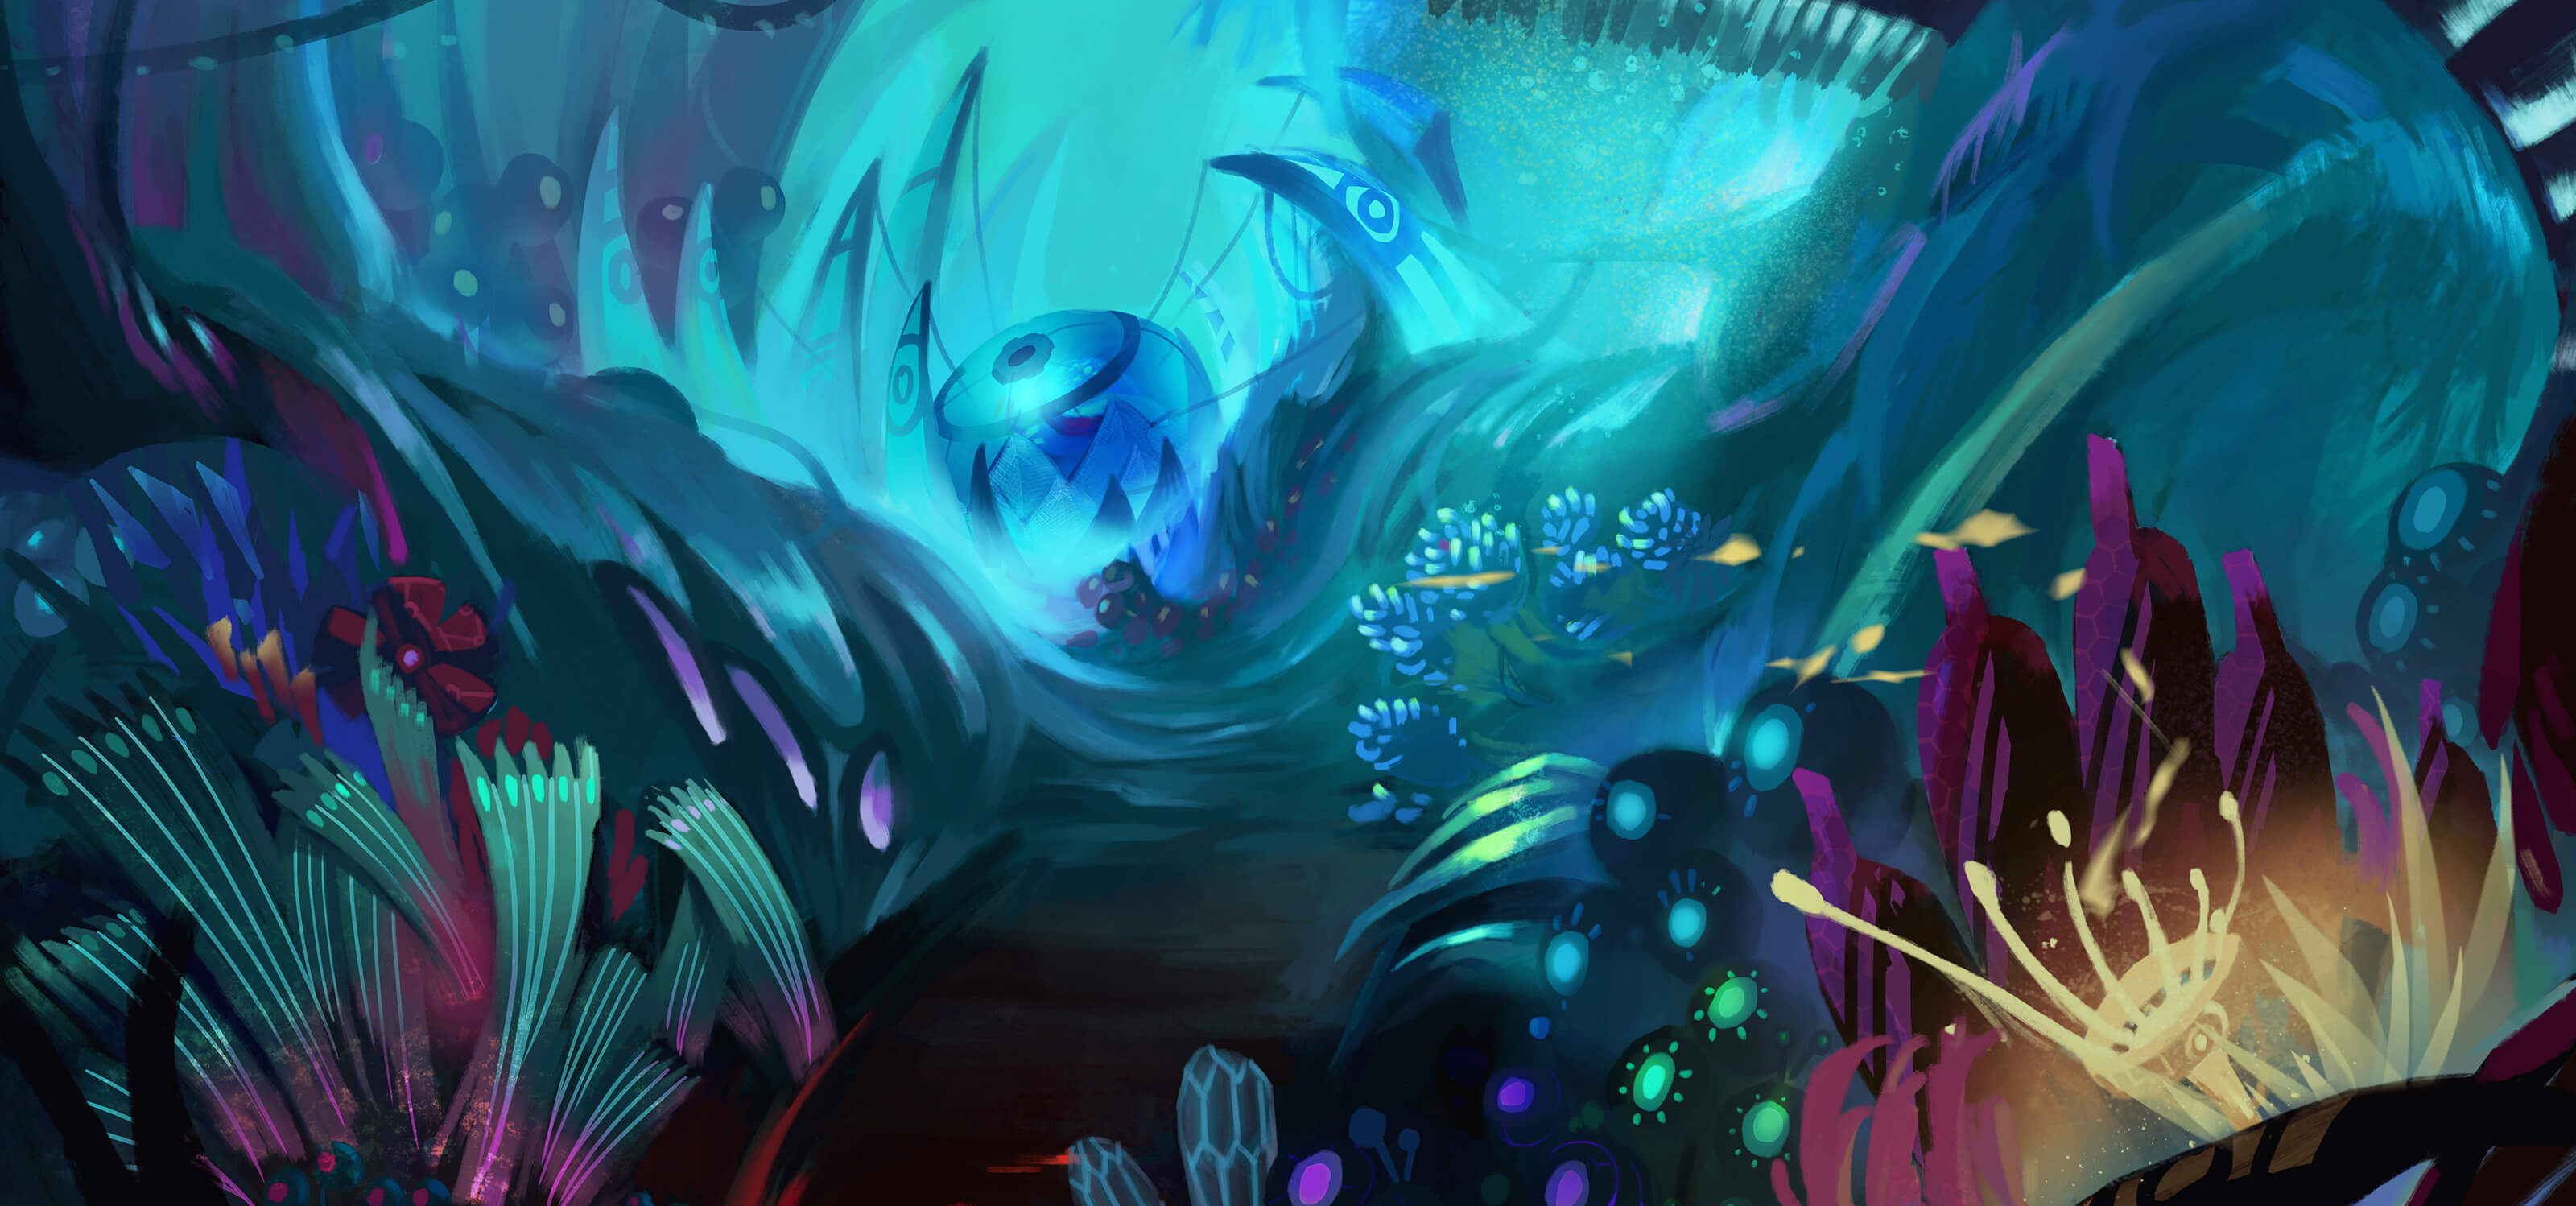 Digital painting of an underwater scene rendered in blues, greens, and purples